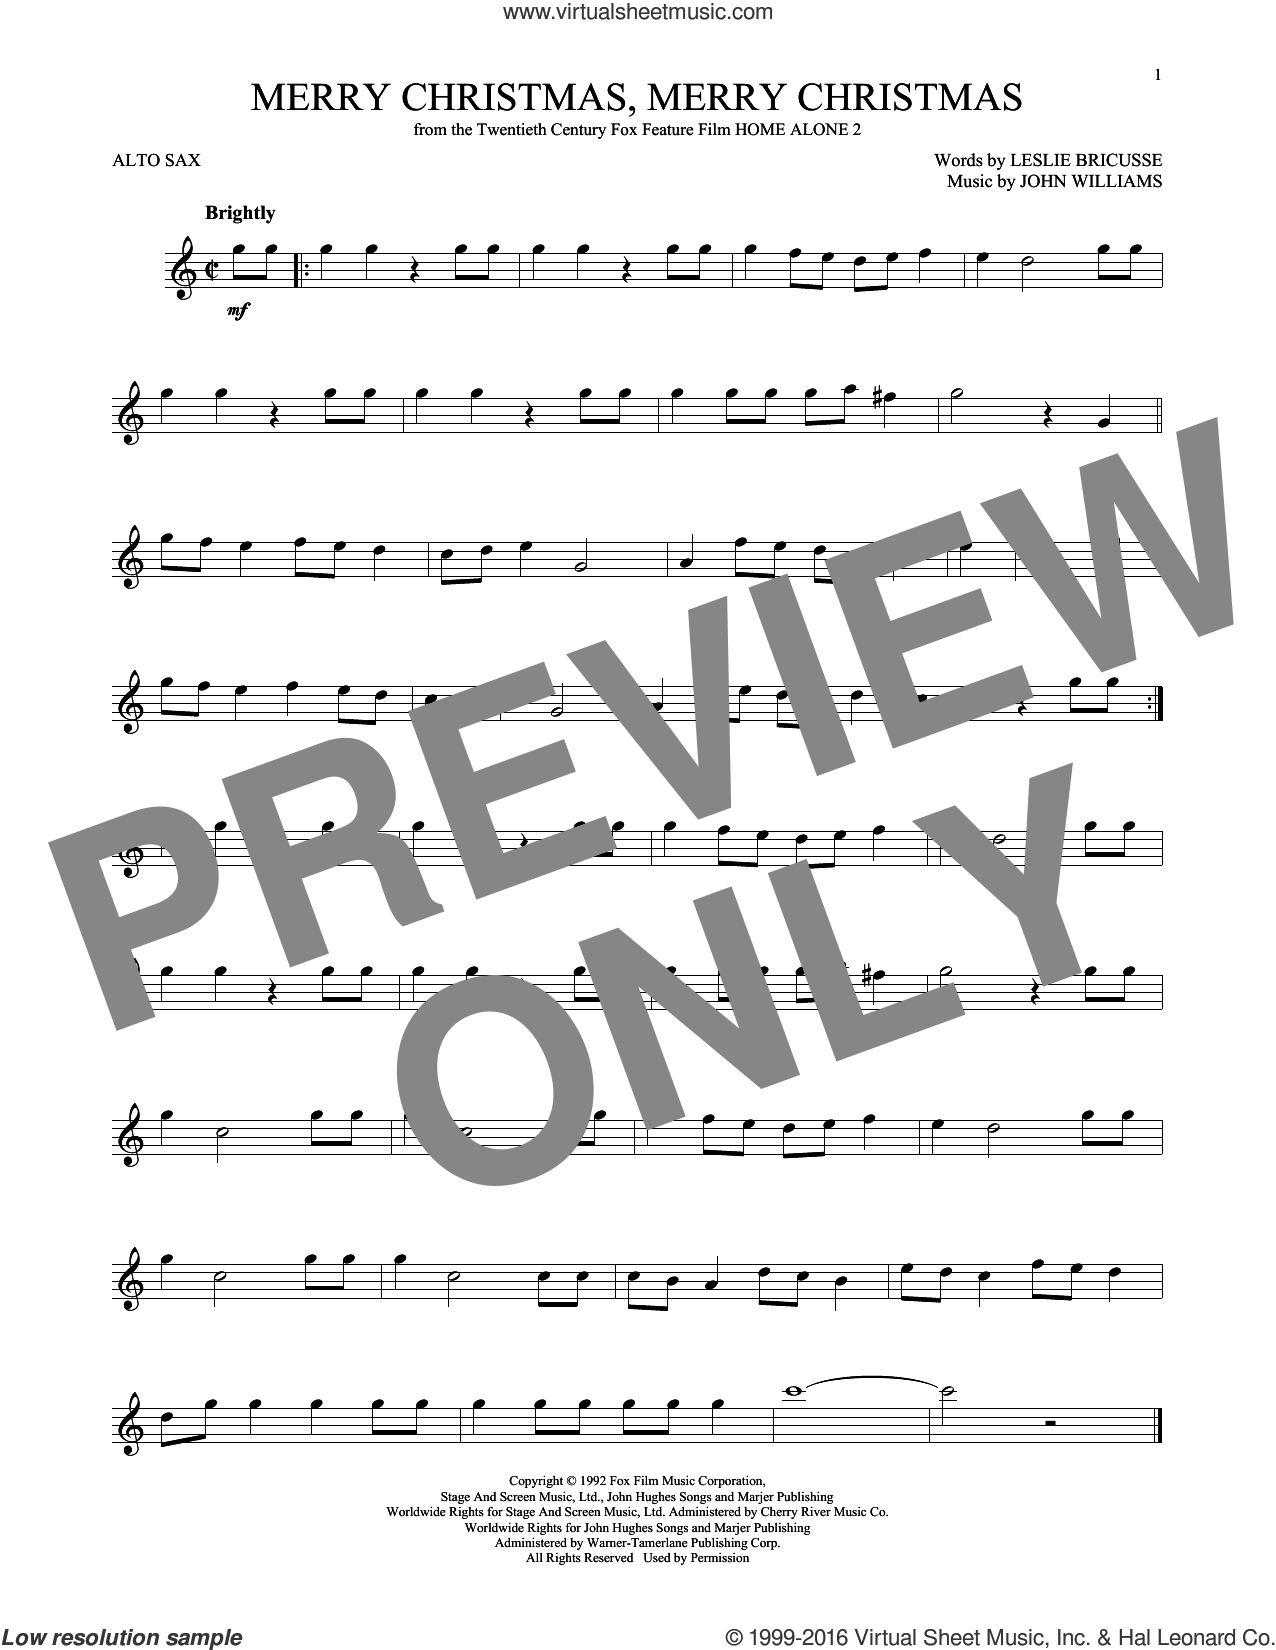 Merry Christmas, Merry Christmas sheet music for alto saxophone solo by John Williams and Leslie Bricusse, intermediate skill level